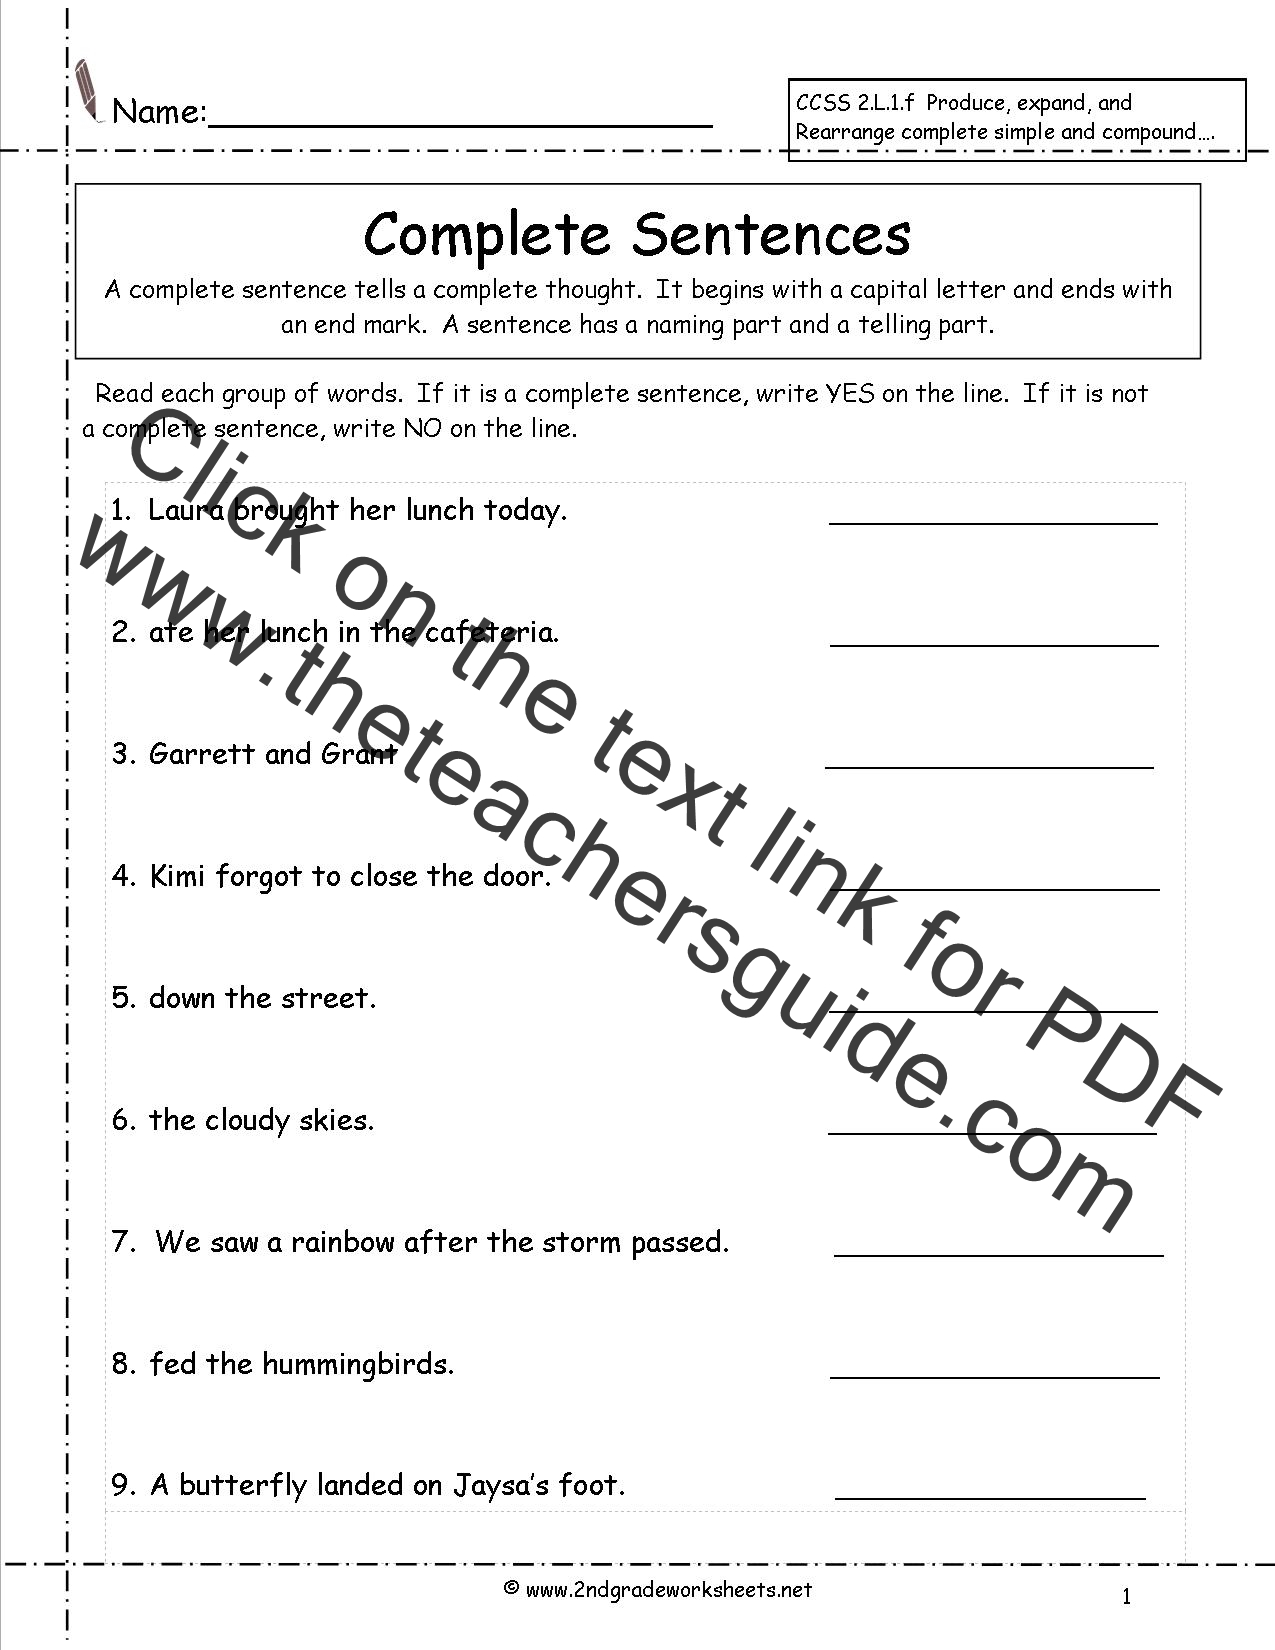 Printables Correct Sentences Worksheet second grade sentences worksheets ccss 2 l 1 f complete worksheets